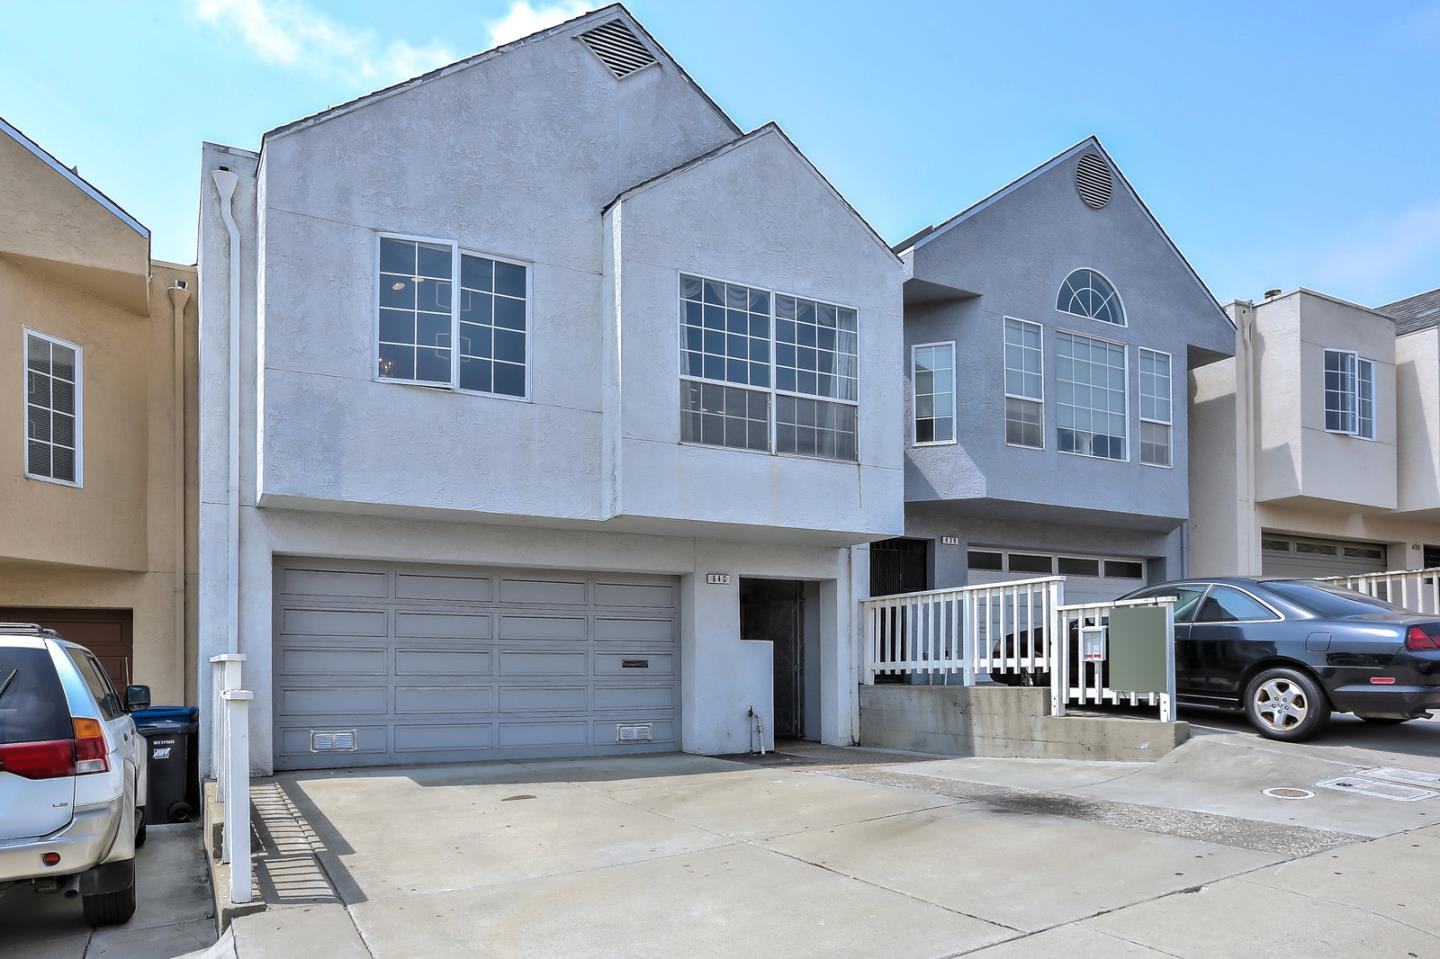 640 Lausanne Ave, Daly City, CA — MLS# 81720569 — Coldwell Banker